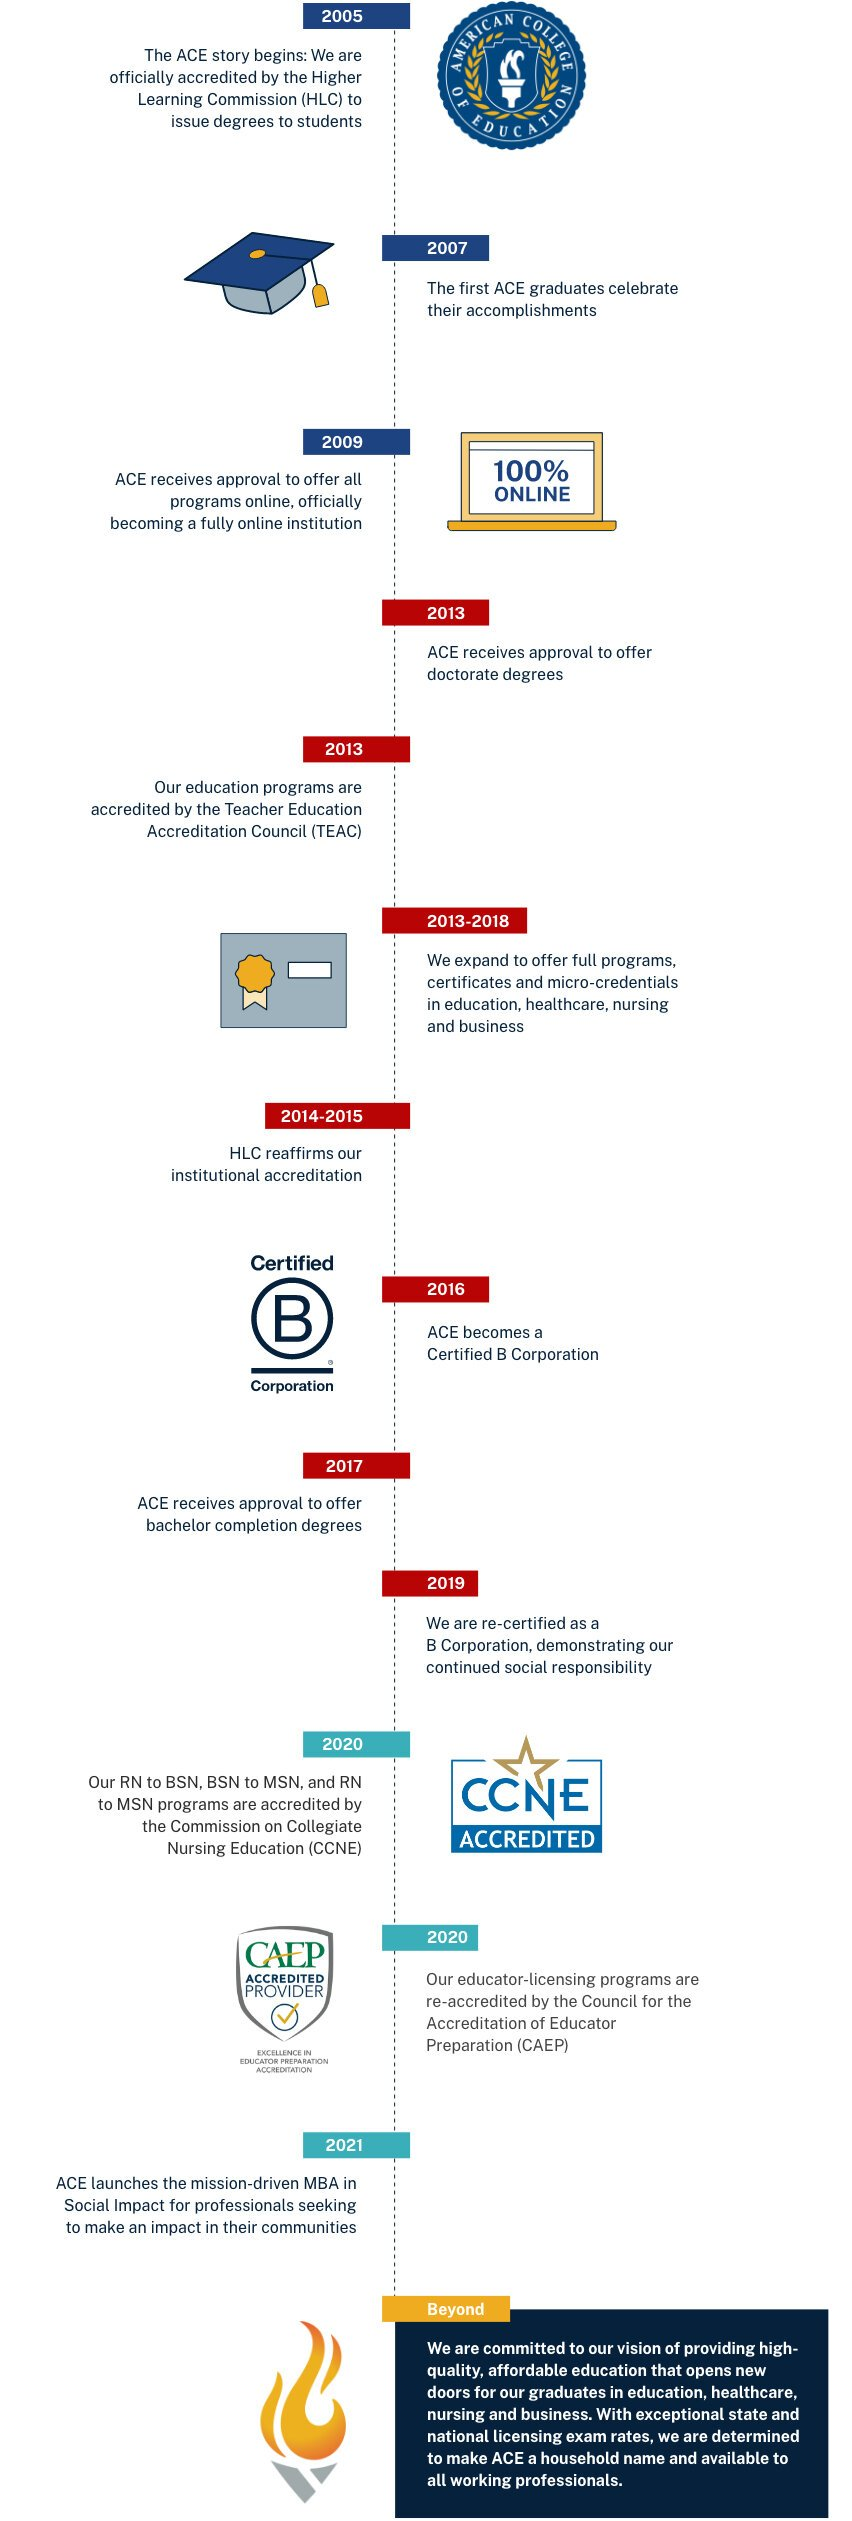 A timeline infographic depicting the history of ACEs founding.